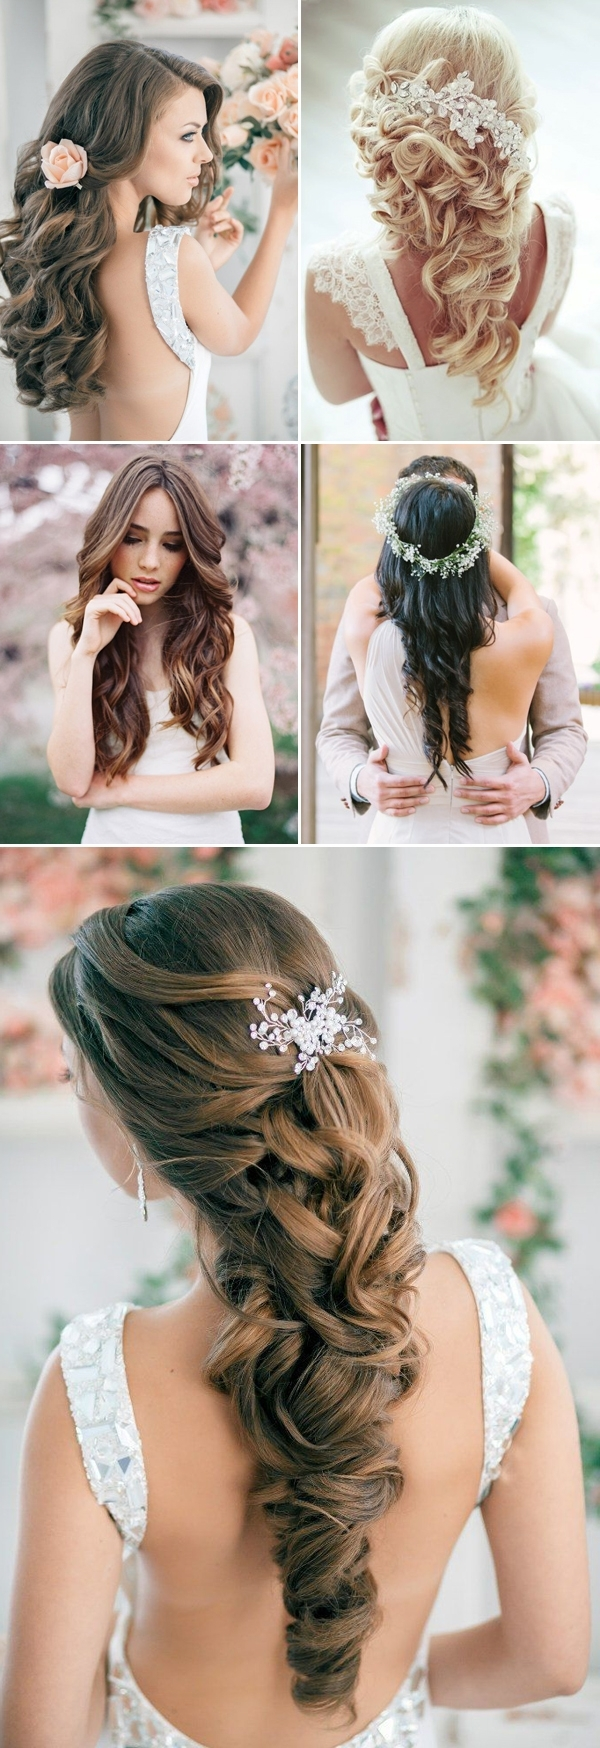 Trendy Wedding Hairstyles For Long Hair Down With Flowers For 42 Steal Worthy Wedding Hairstyles For Long Hair (View 7 of 15)